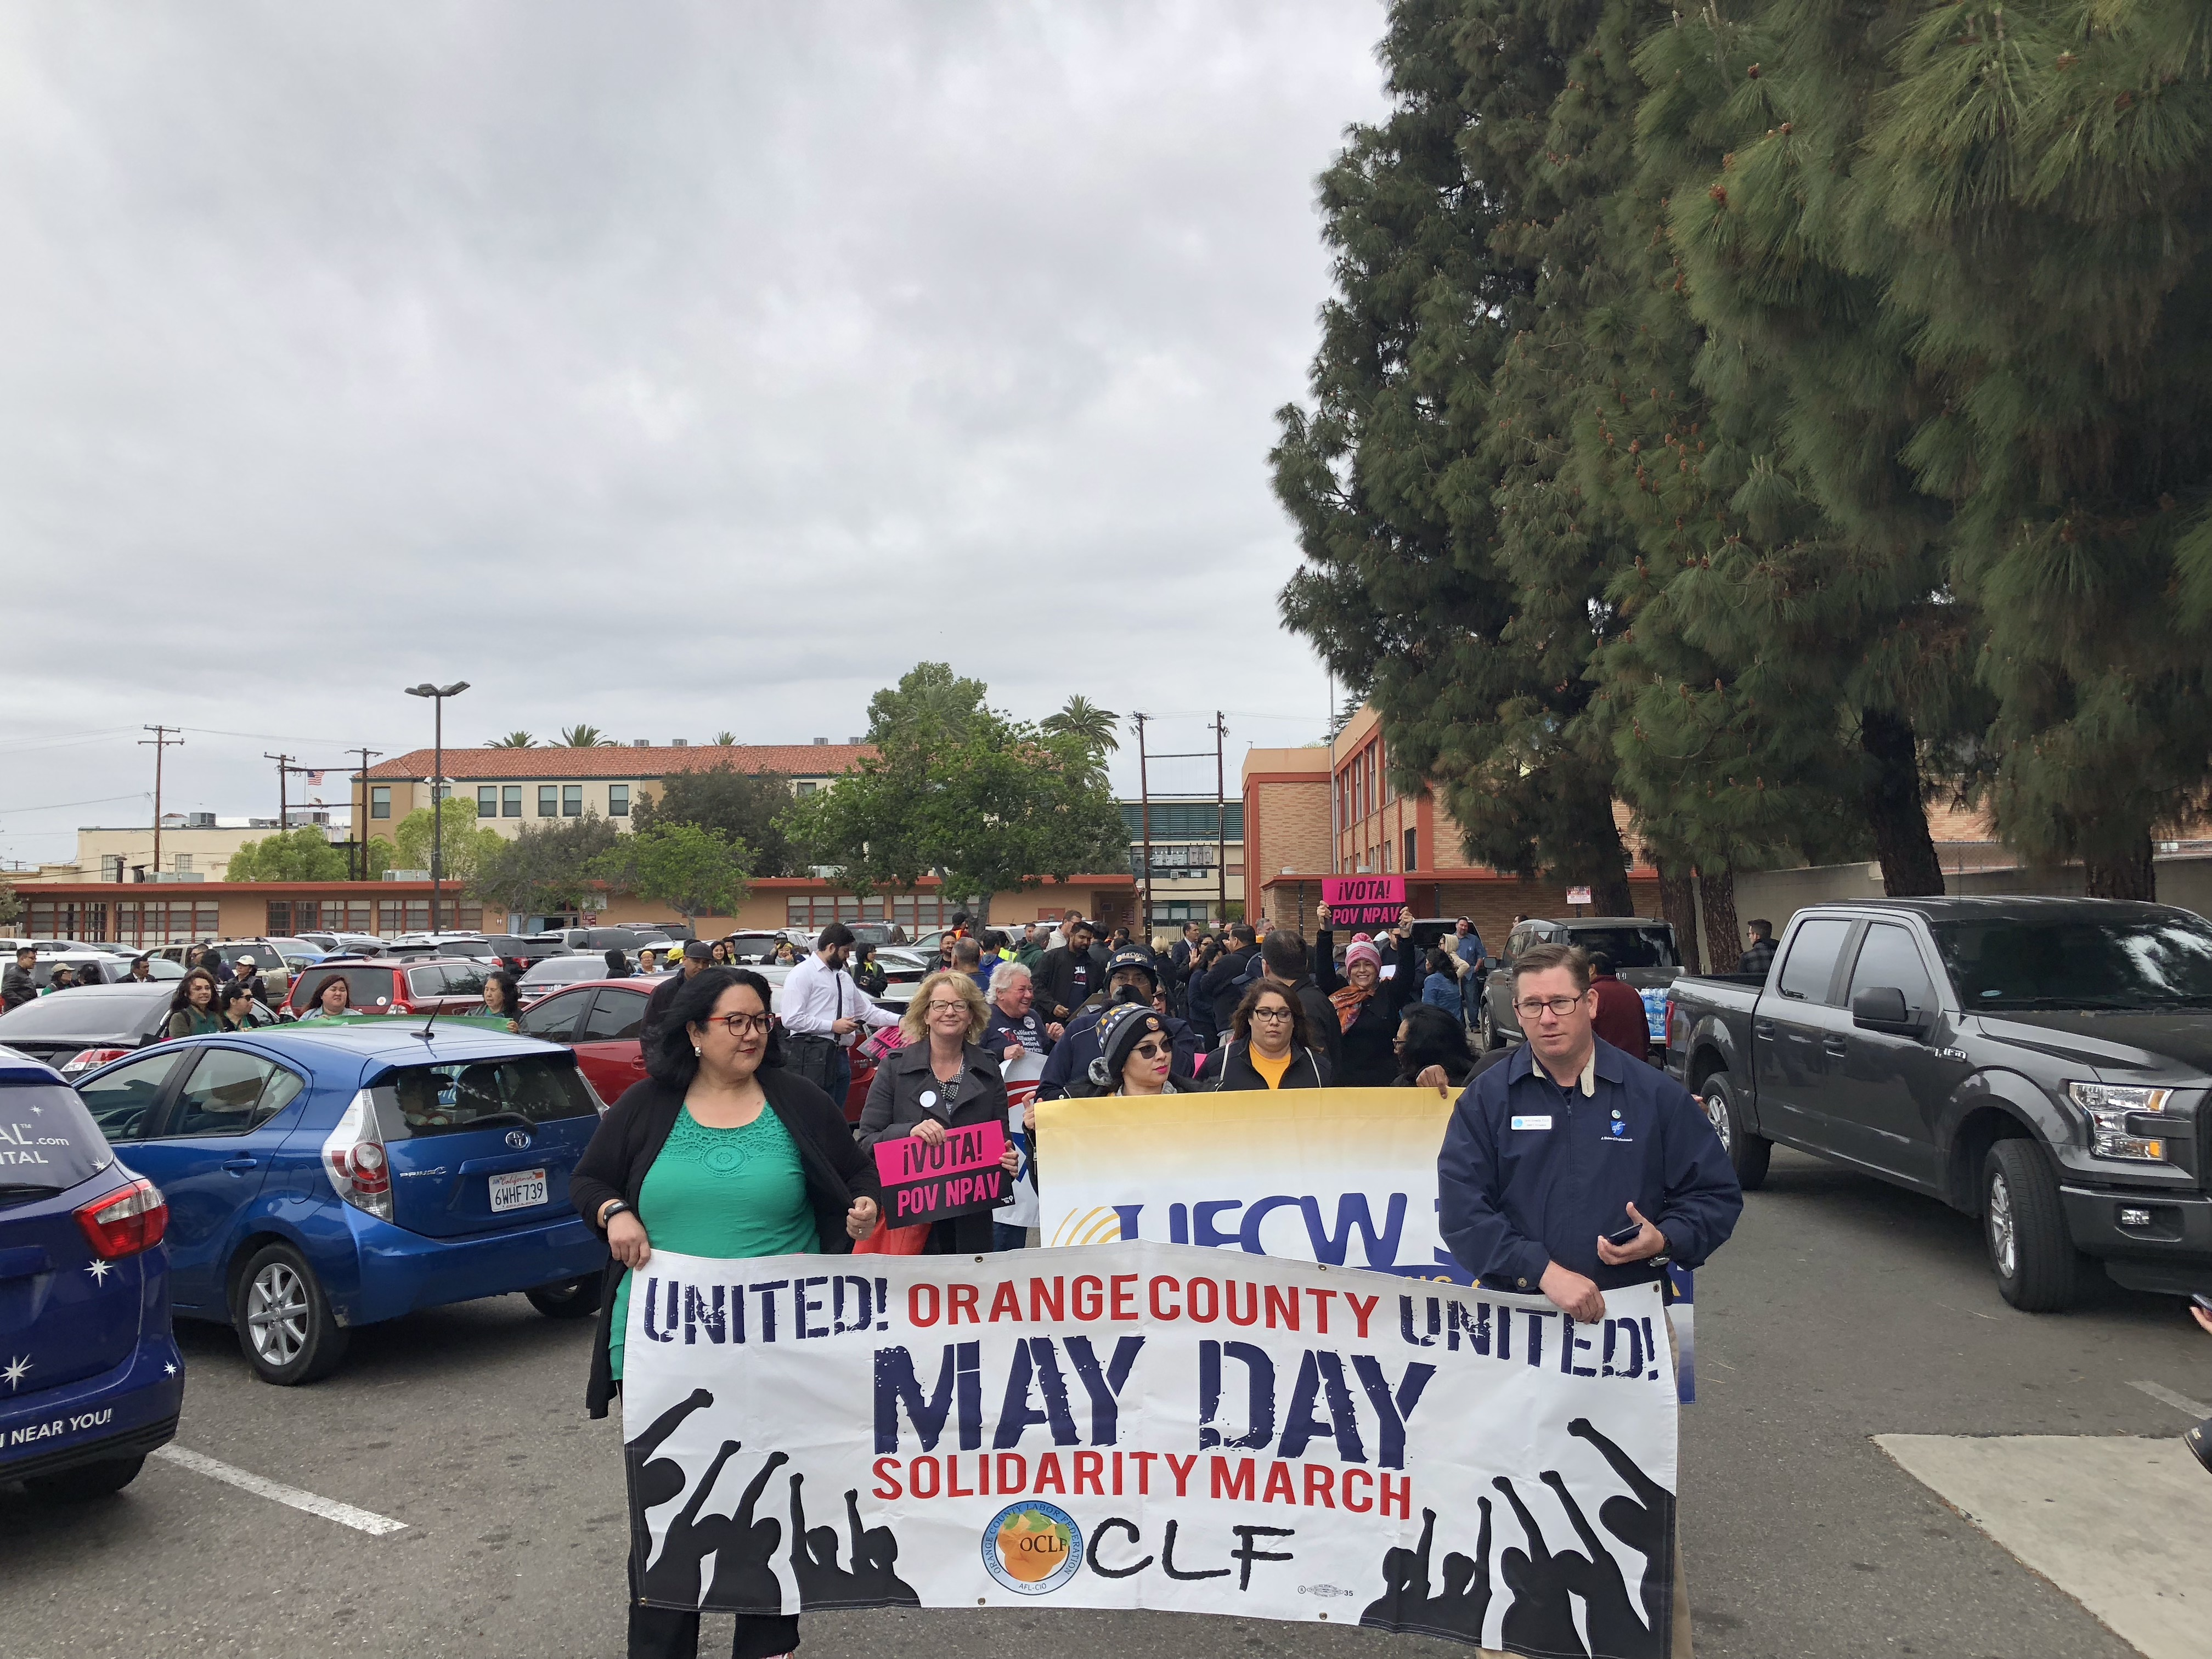 MAY DAY MARCH 2018